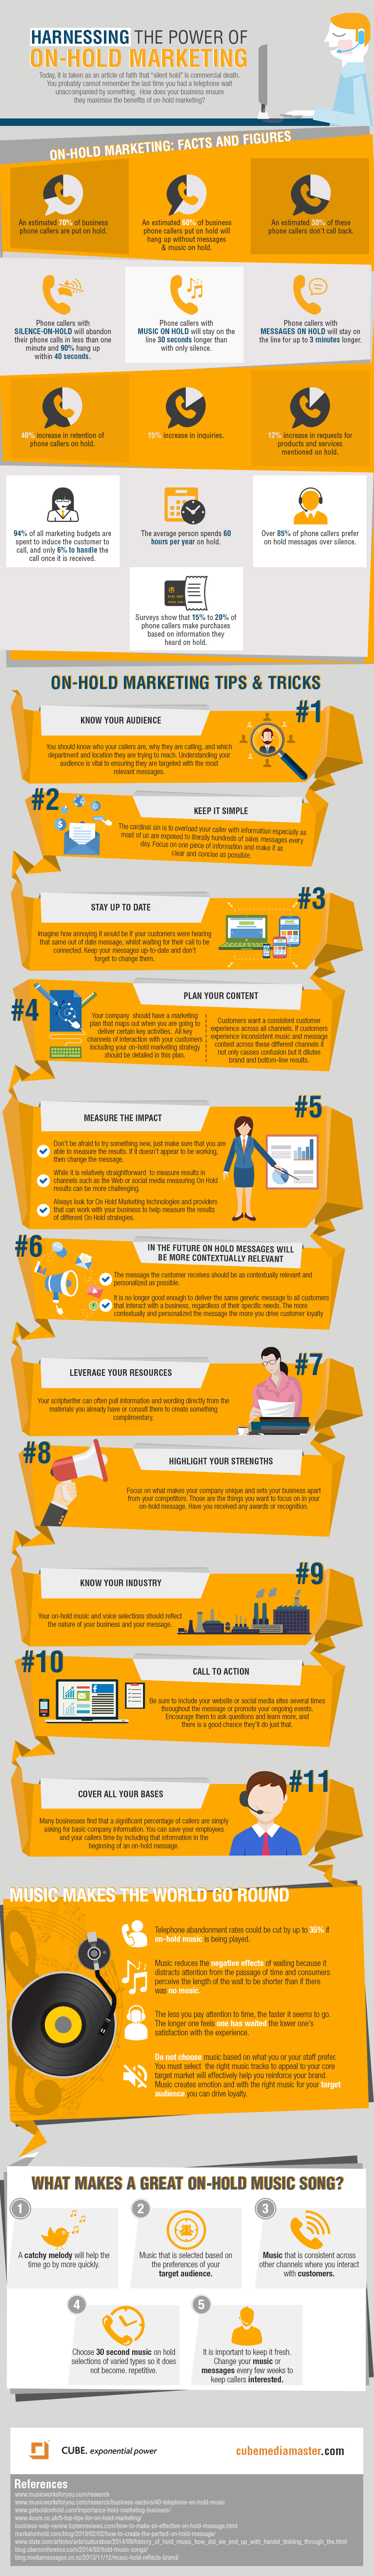 Harnessing the Power of On-hold Marketing #infographic